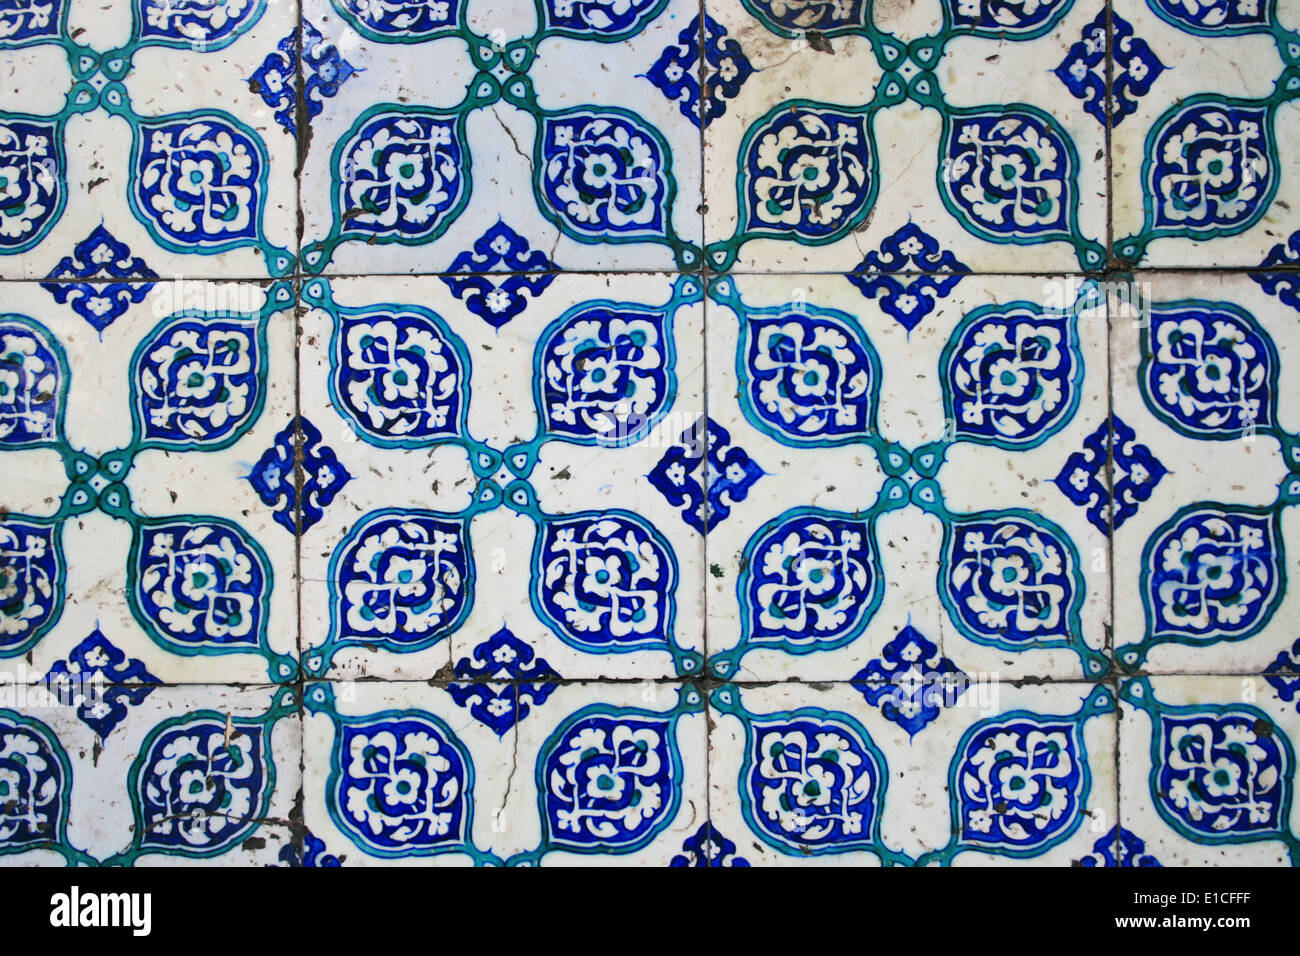 Old Wall Tiles of Yeni Mosque in Istanbul - Stock Image